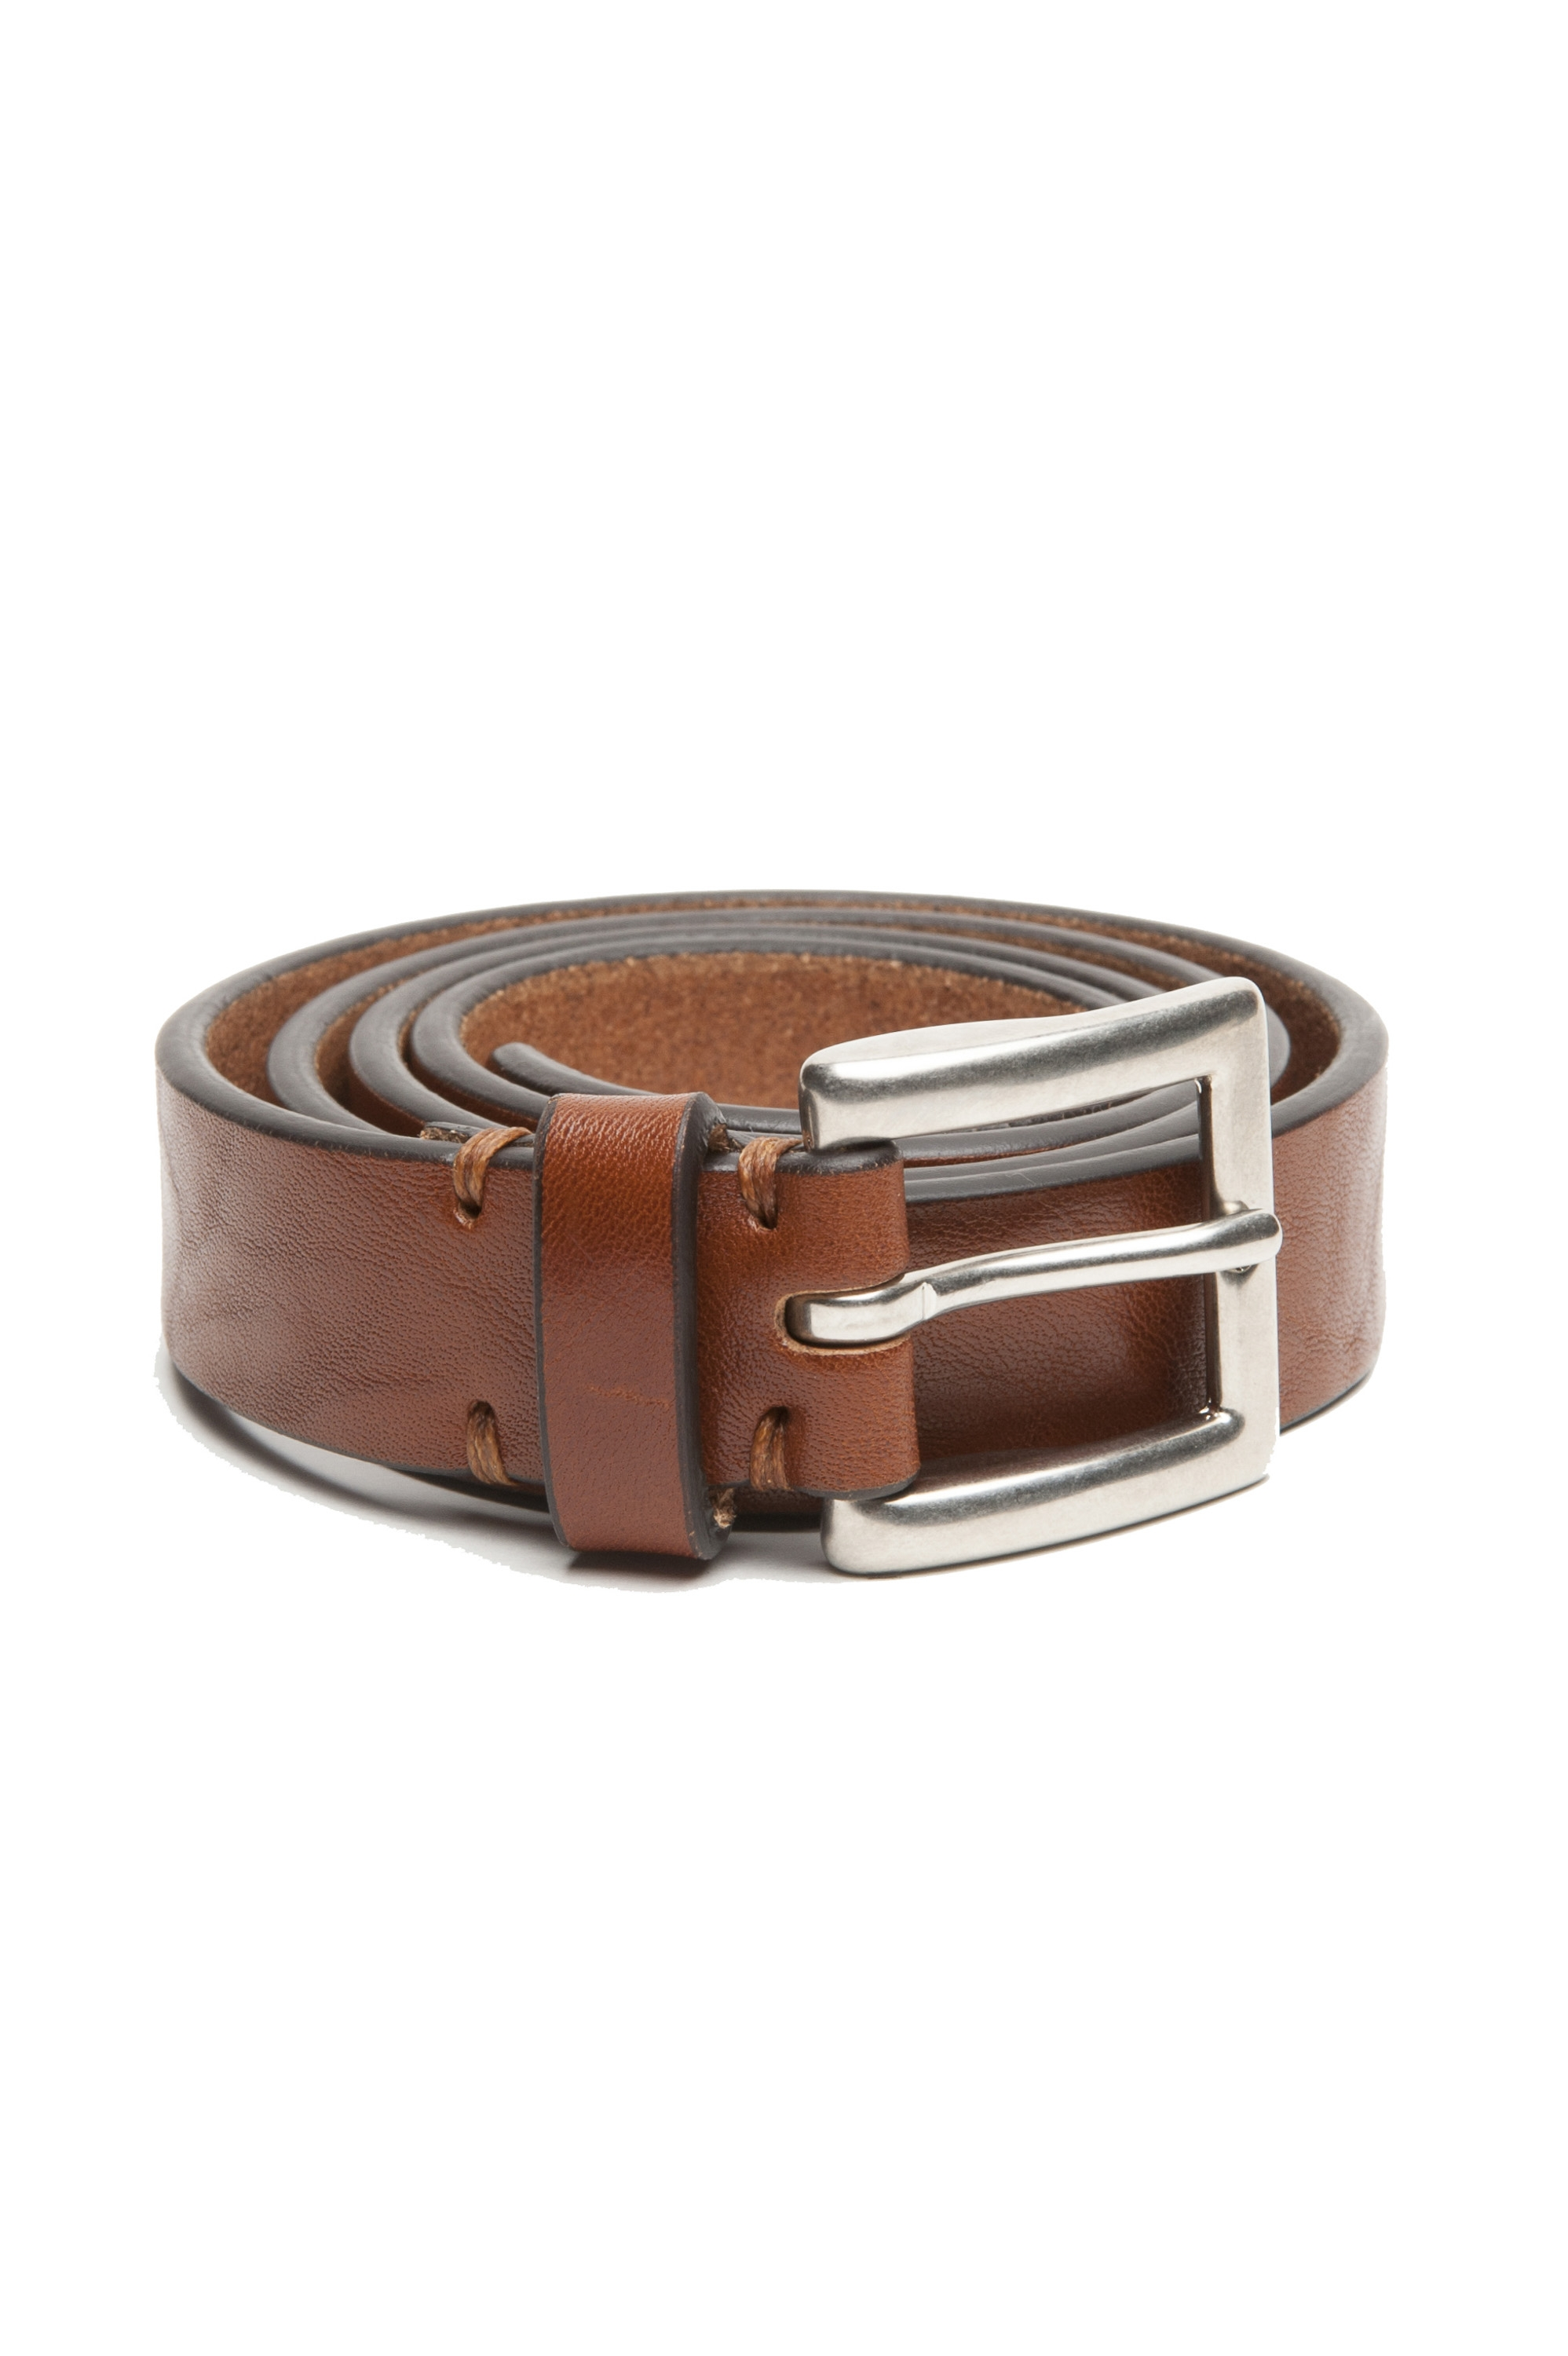 SBU 02813_2020SS Buff bullhide leather belt 0.9 inches cuir 01